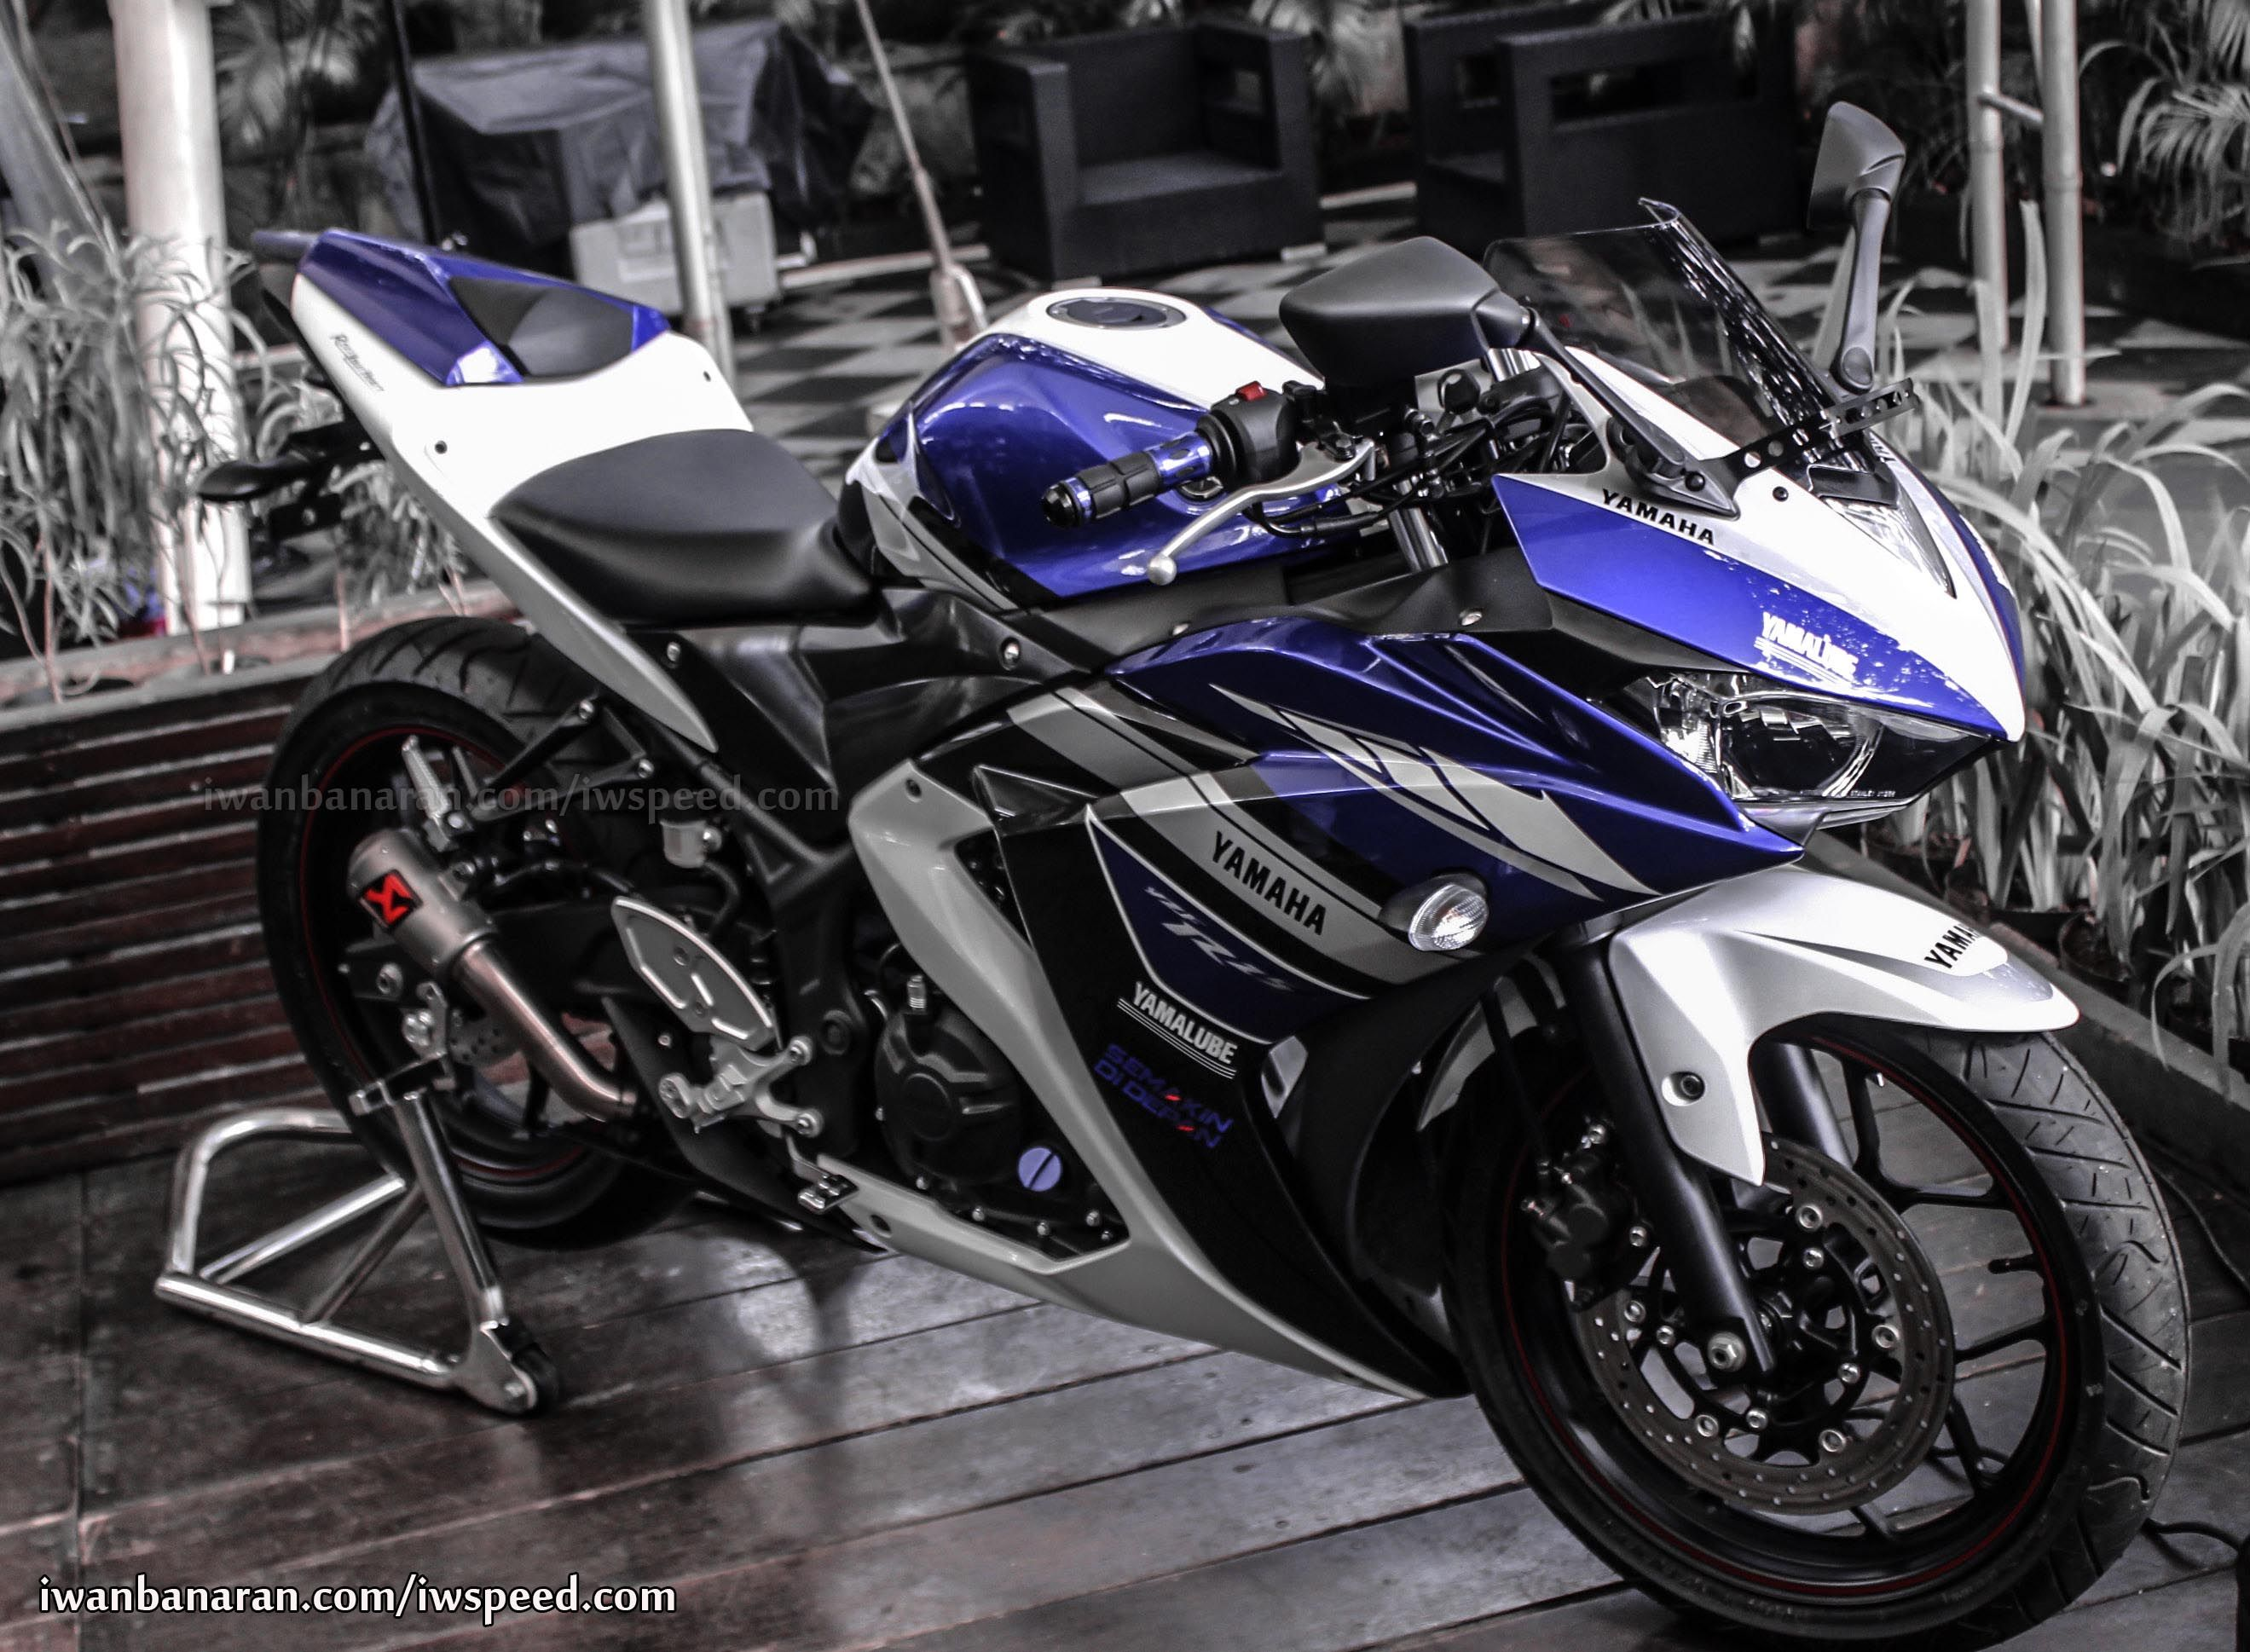 Yamaha yzf r25 wallpapers hd images yamaha yzf r25 hd for Yamaha yzf r25